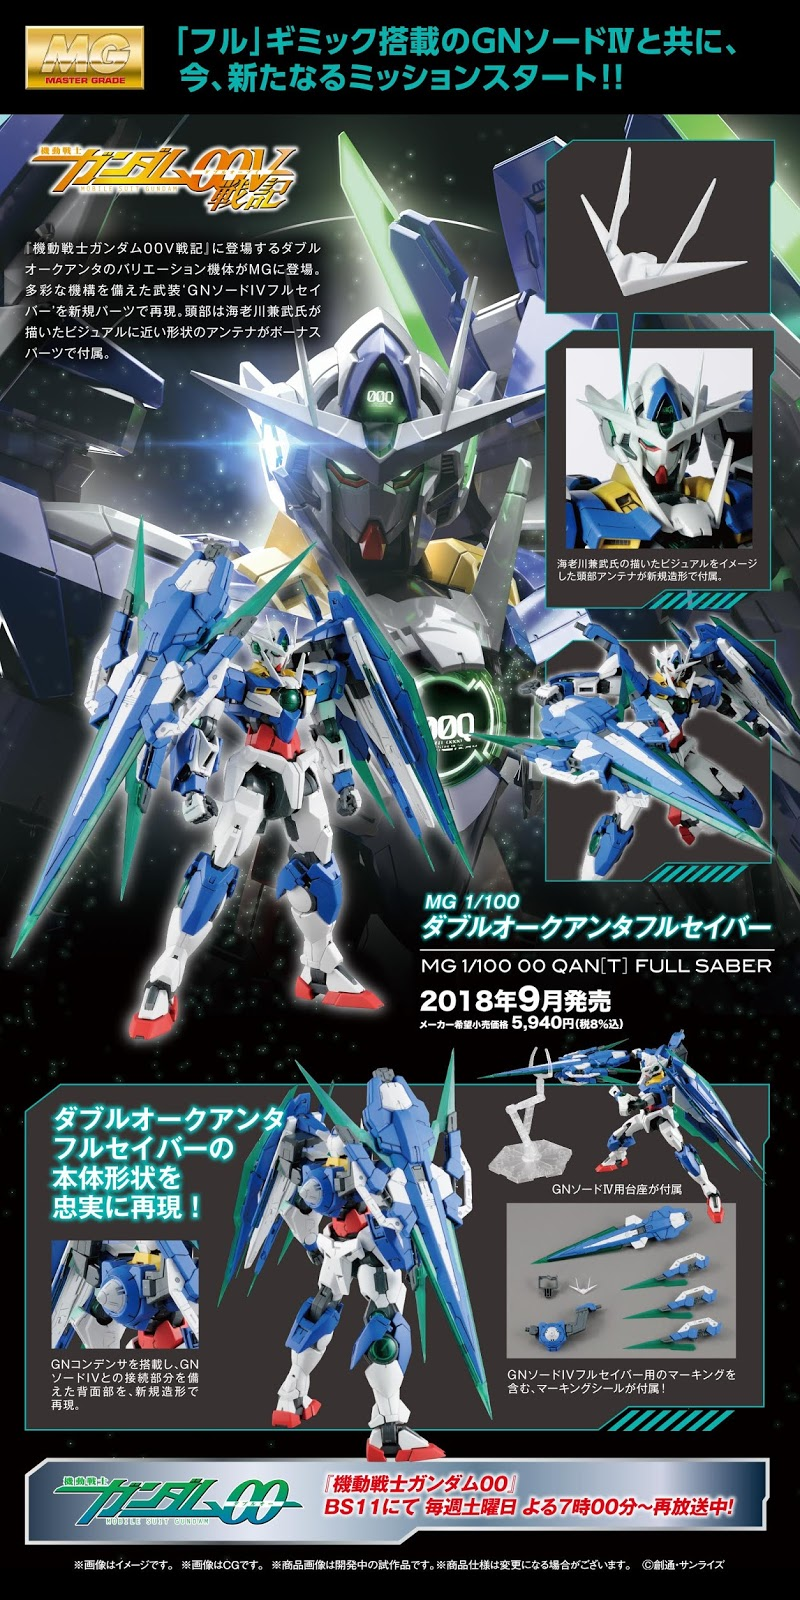 MG 1/100 00 Quanta Full Saber - Release Info - Gundam Kits Collection News and Reviews